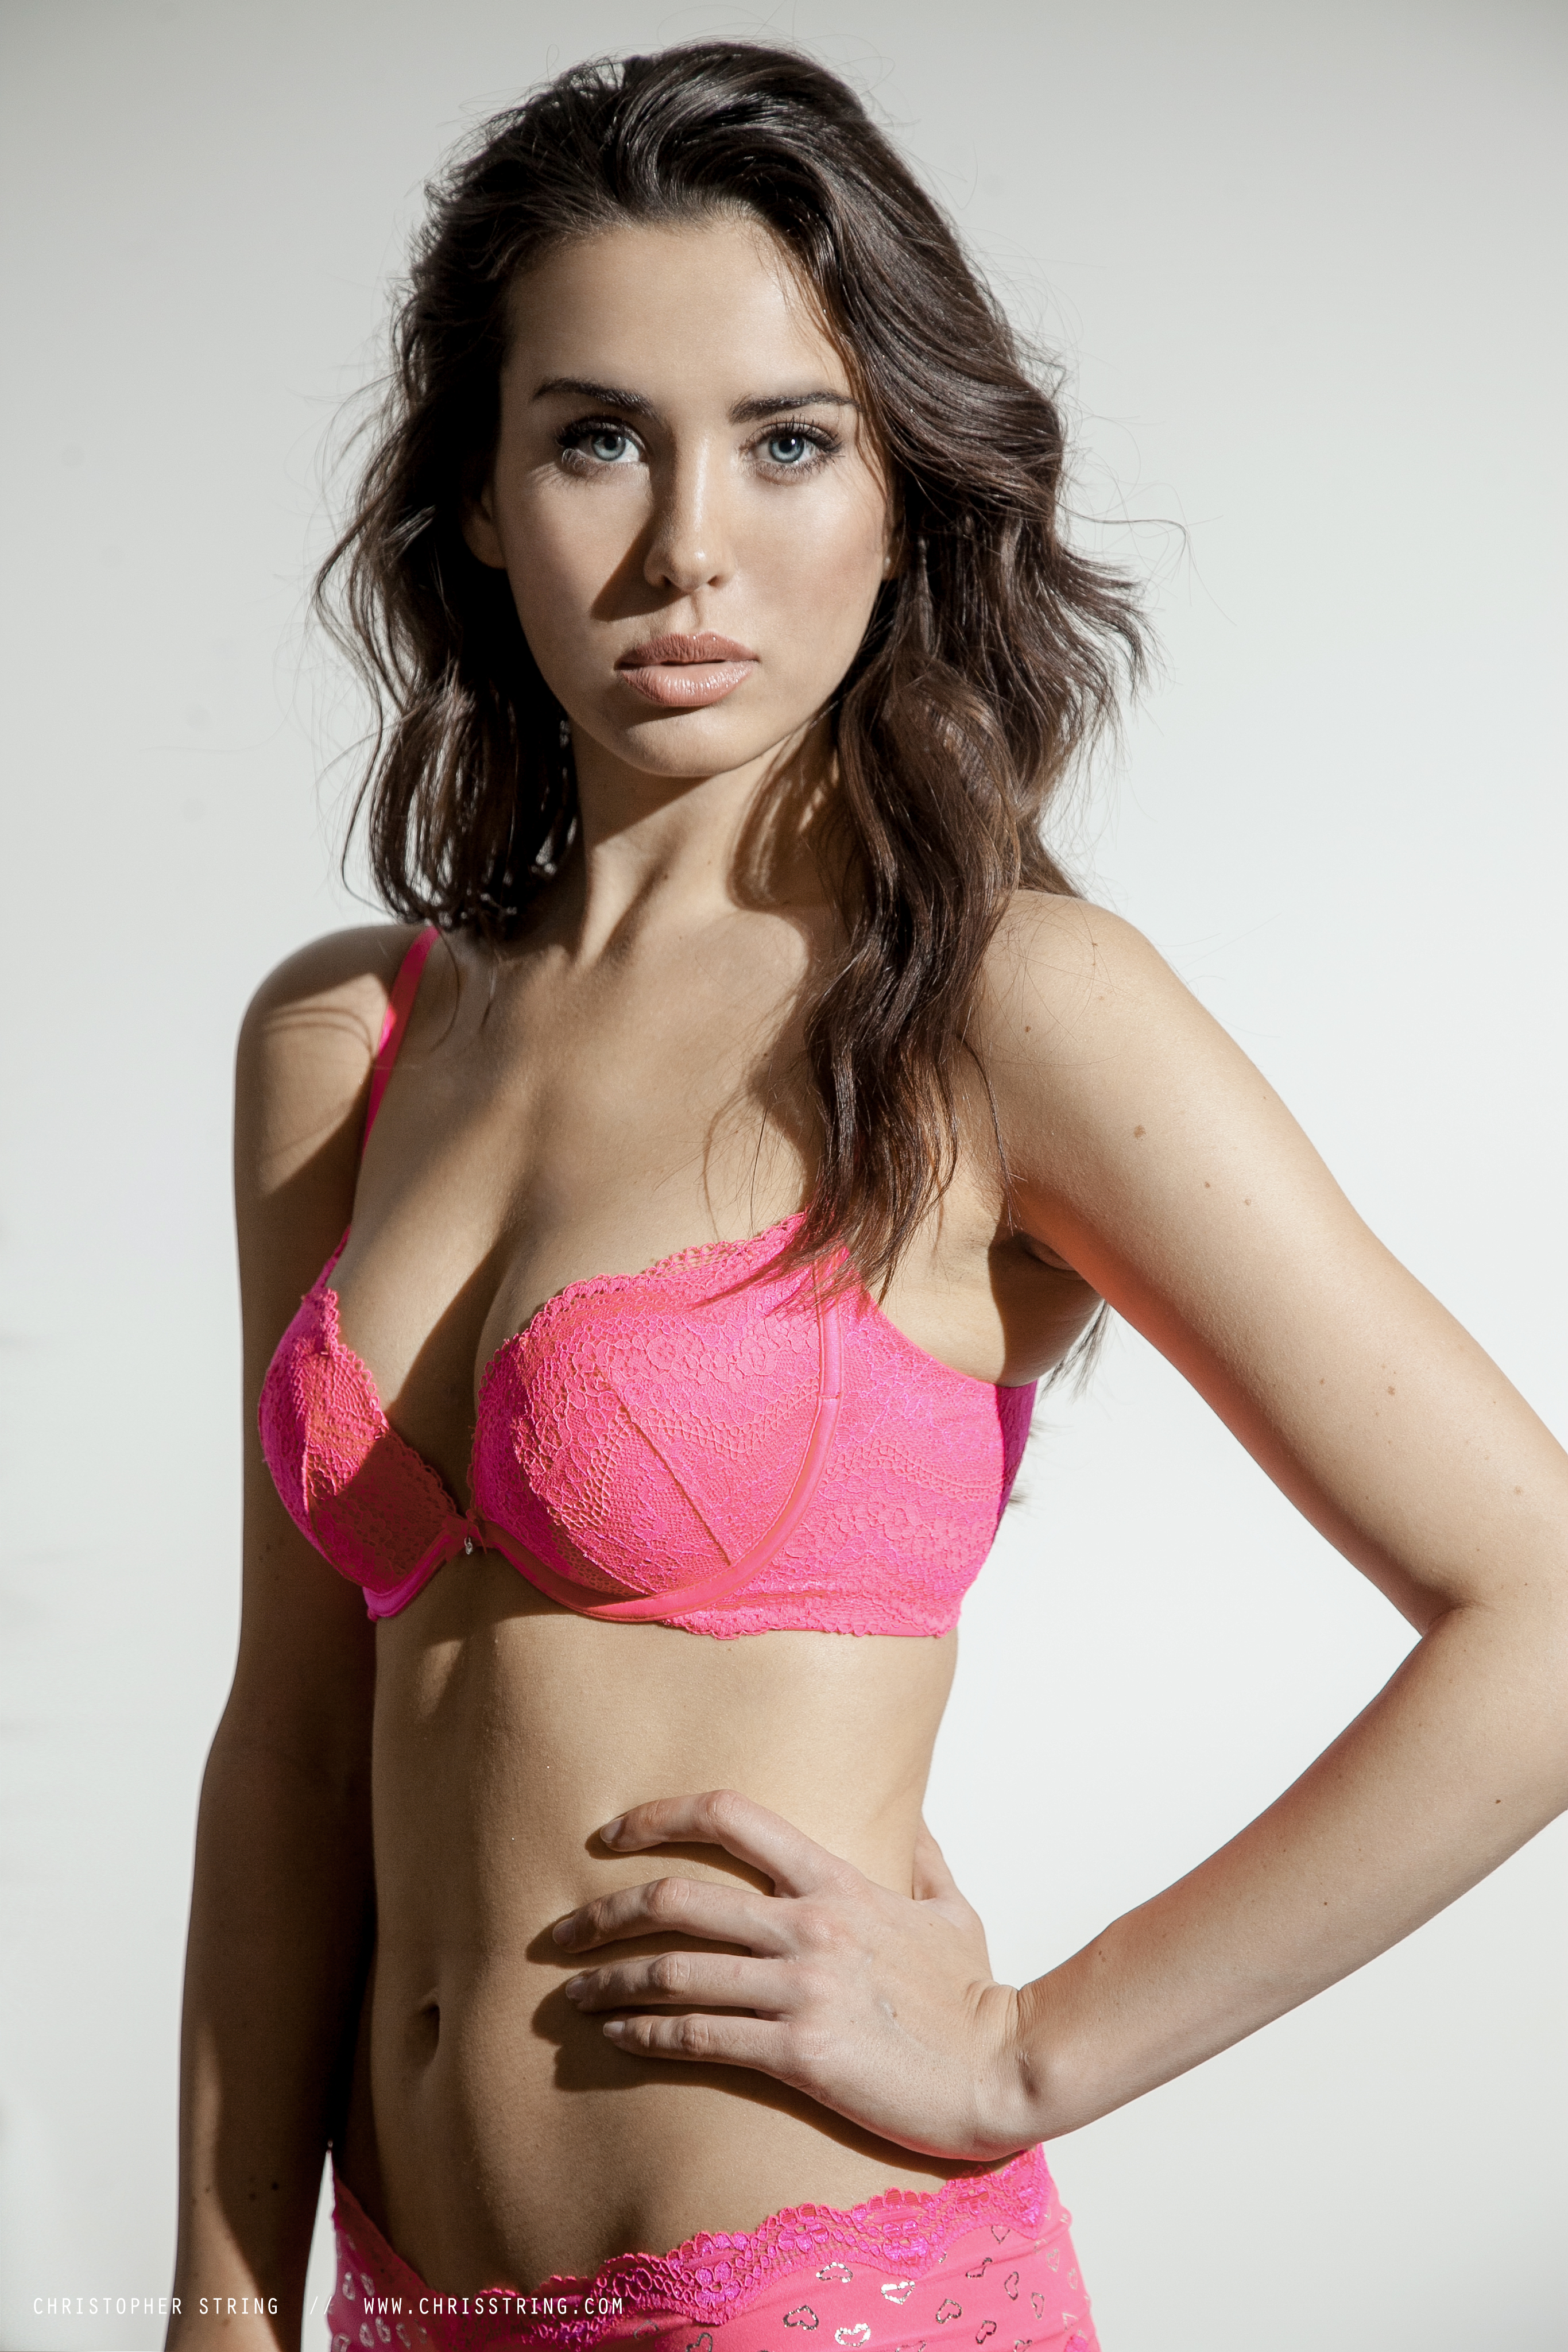 Woman in Pink Bra and underwear